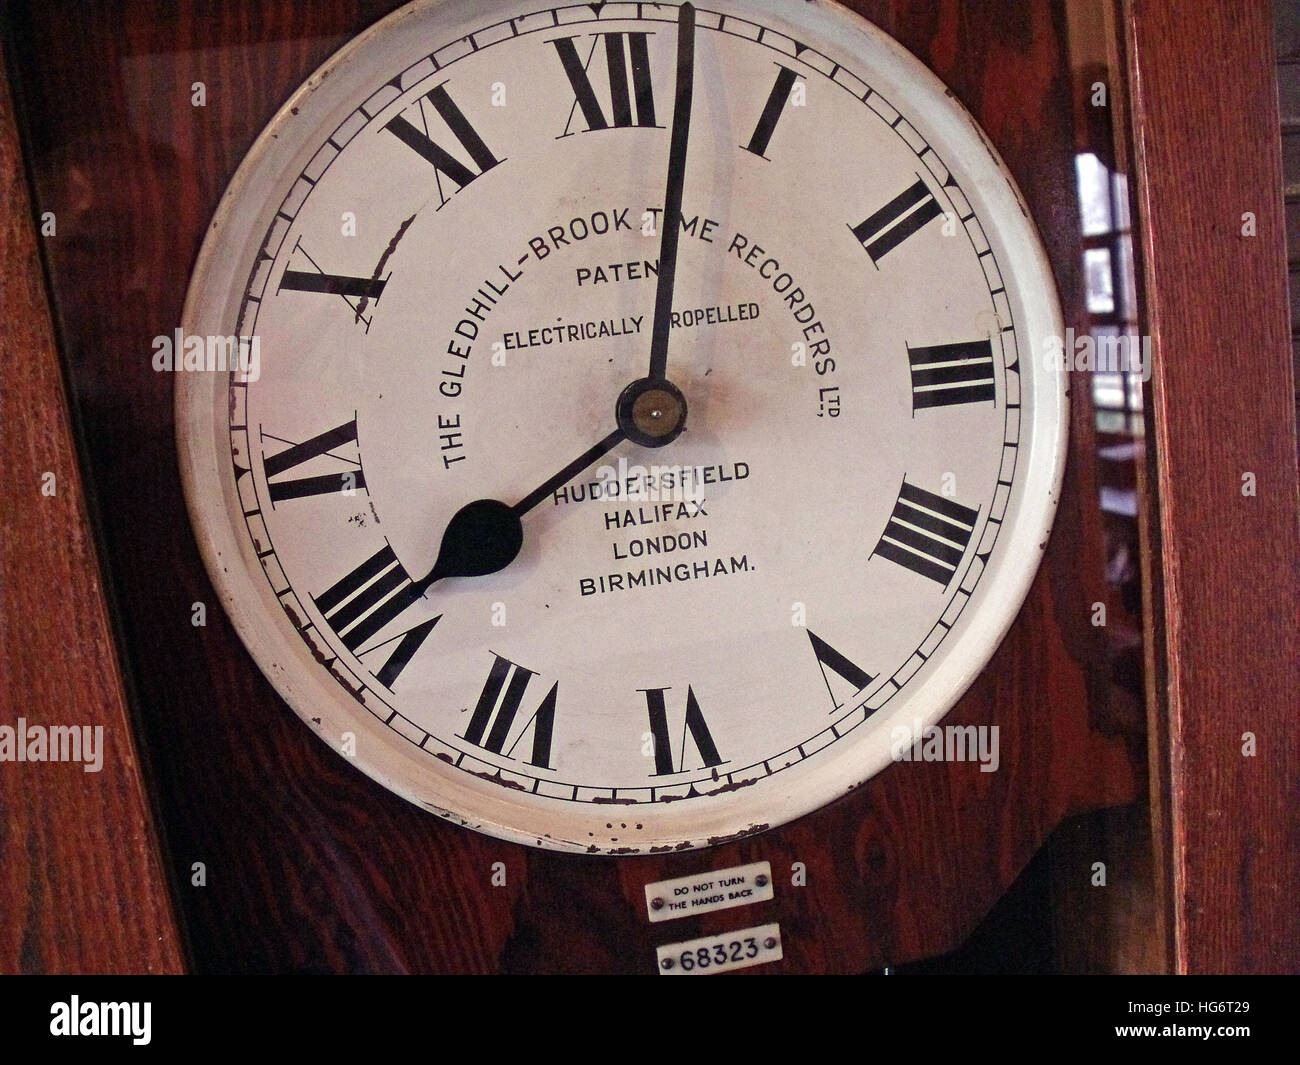 ClockingIn Machine, Gledhill Brook,Time Recorders - Stock Image